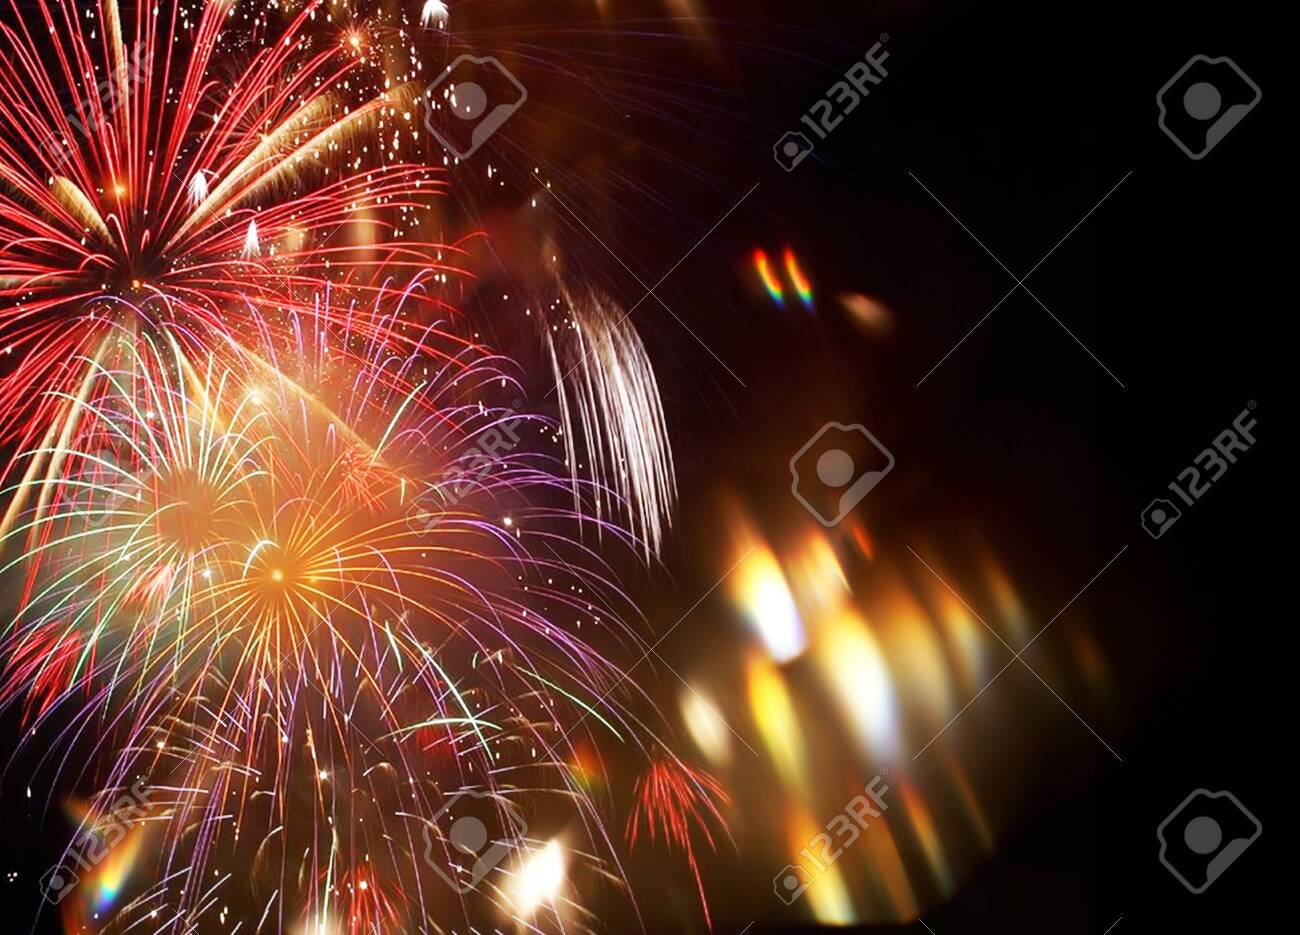 New Year abstract fireworks background - 136448952